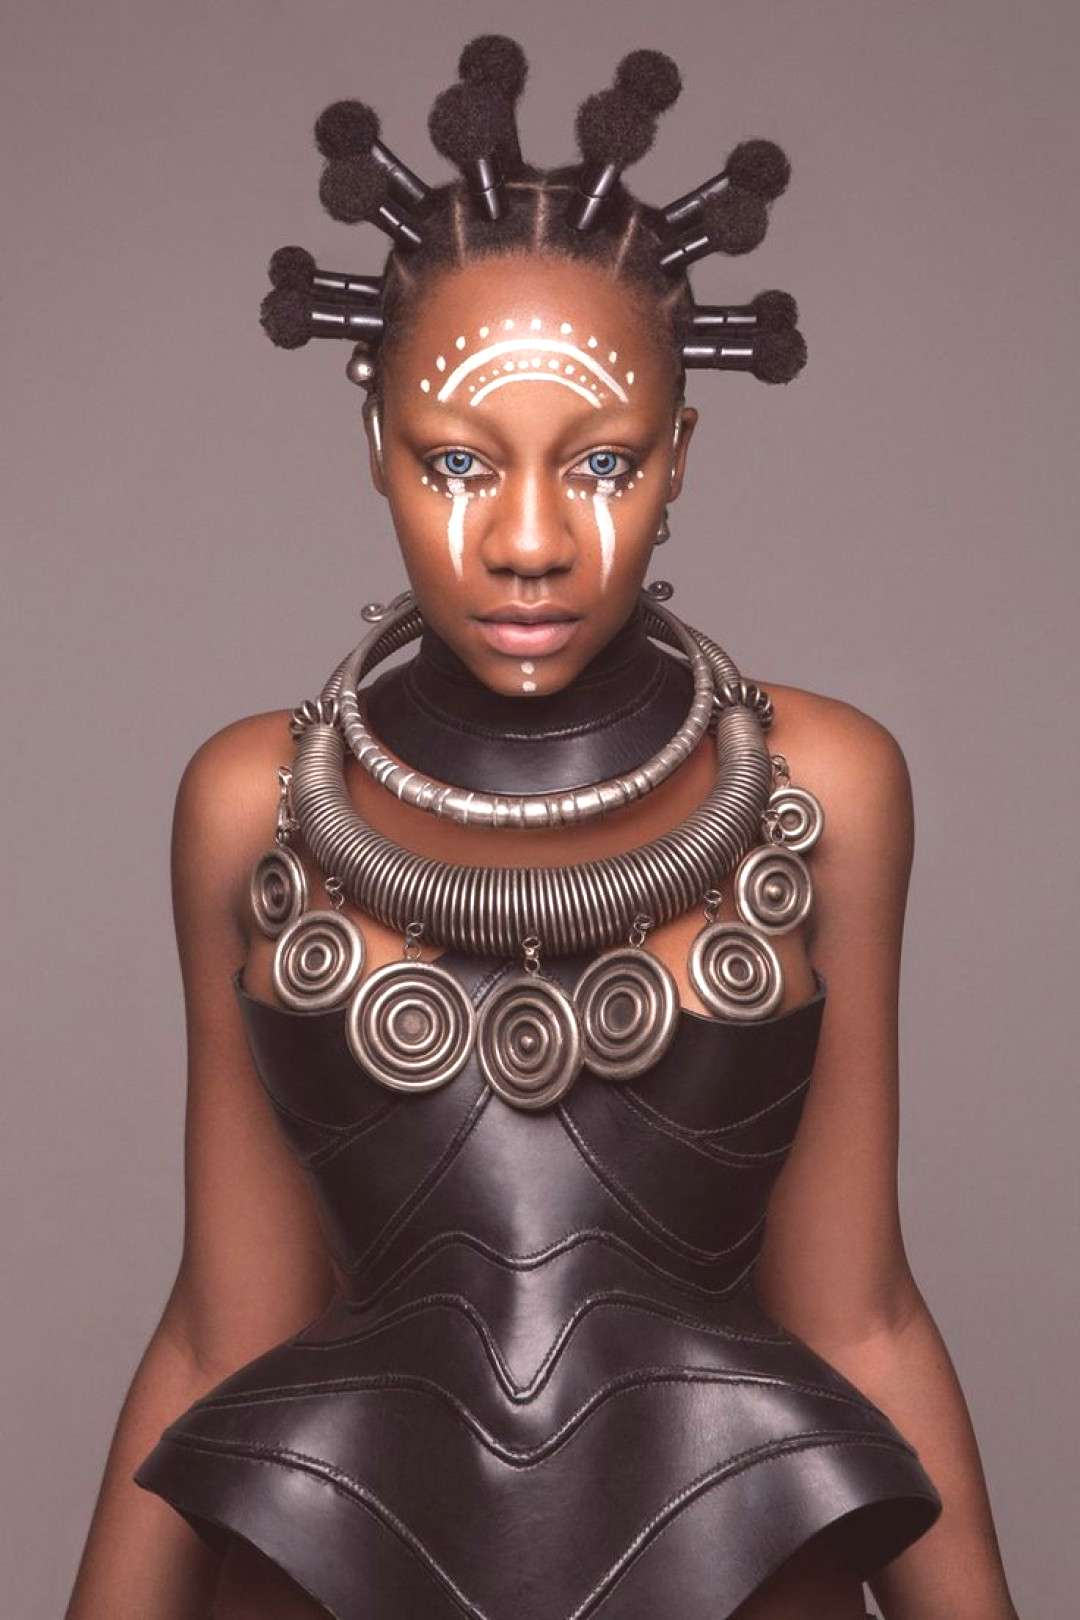 [Pics] These Stunning Futuristic and African-Inspired Hairstyles Won the British Hair Awards via Be